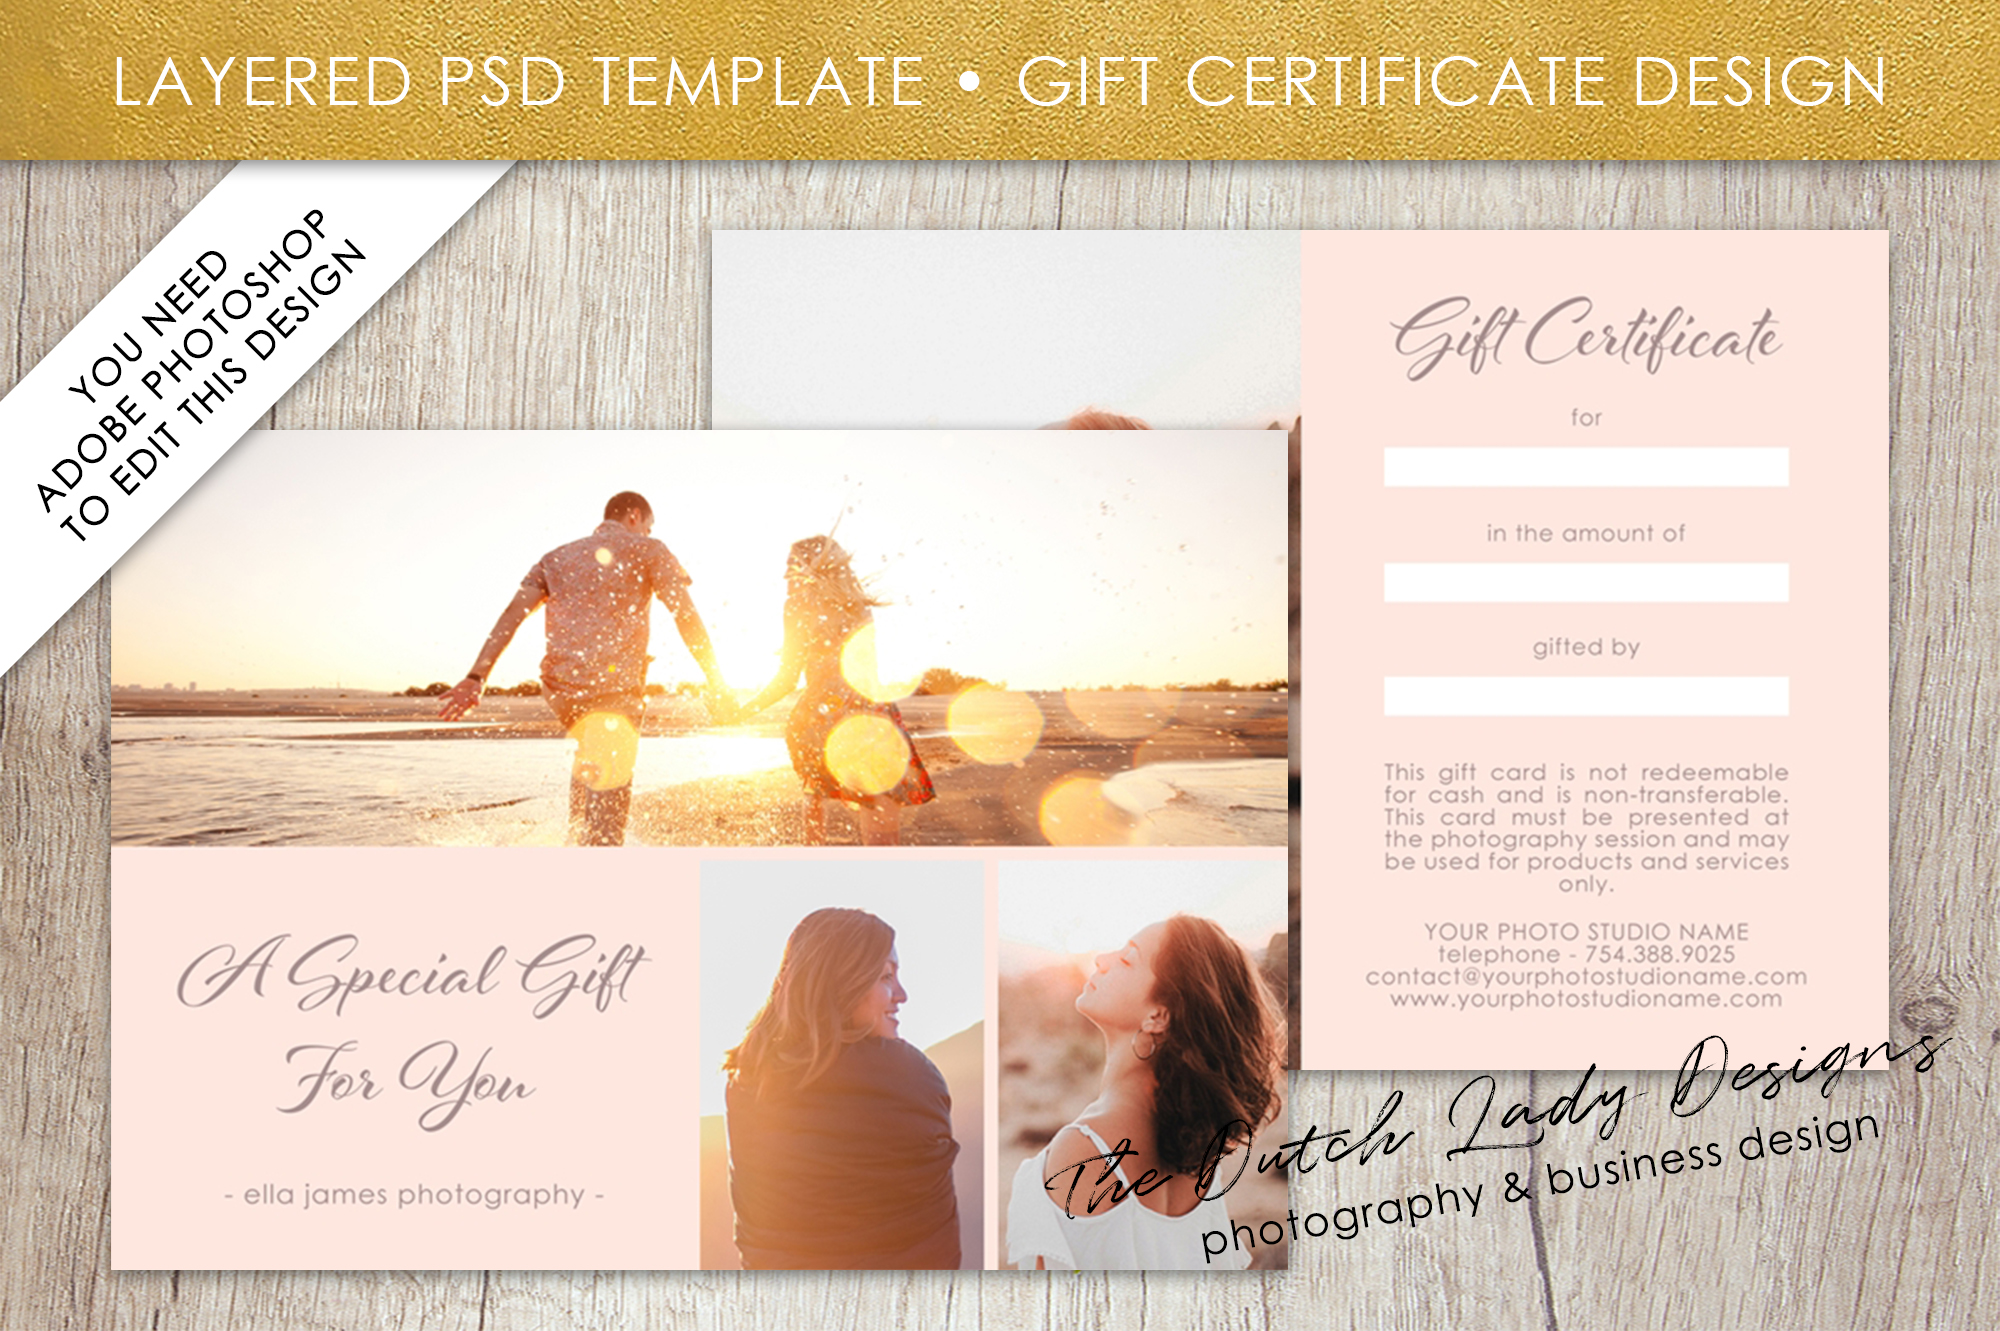 photo gift card template for adobe photoshop layered psd template design 1 example